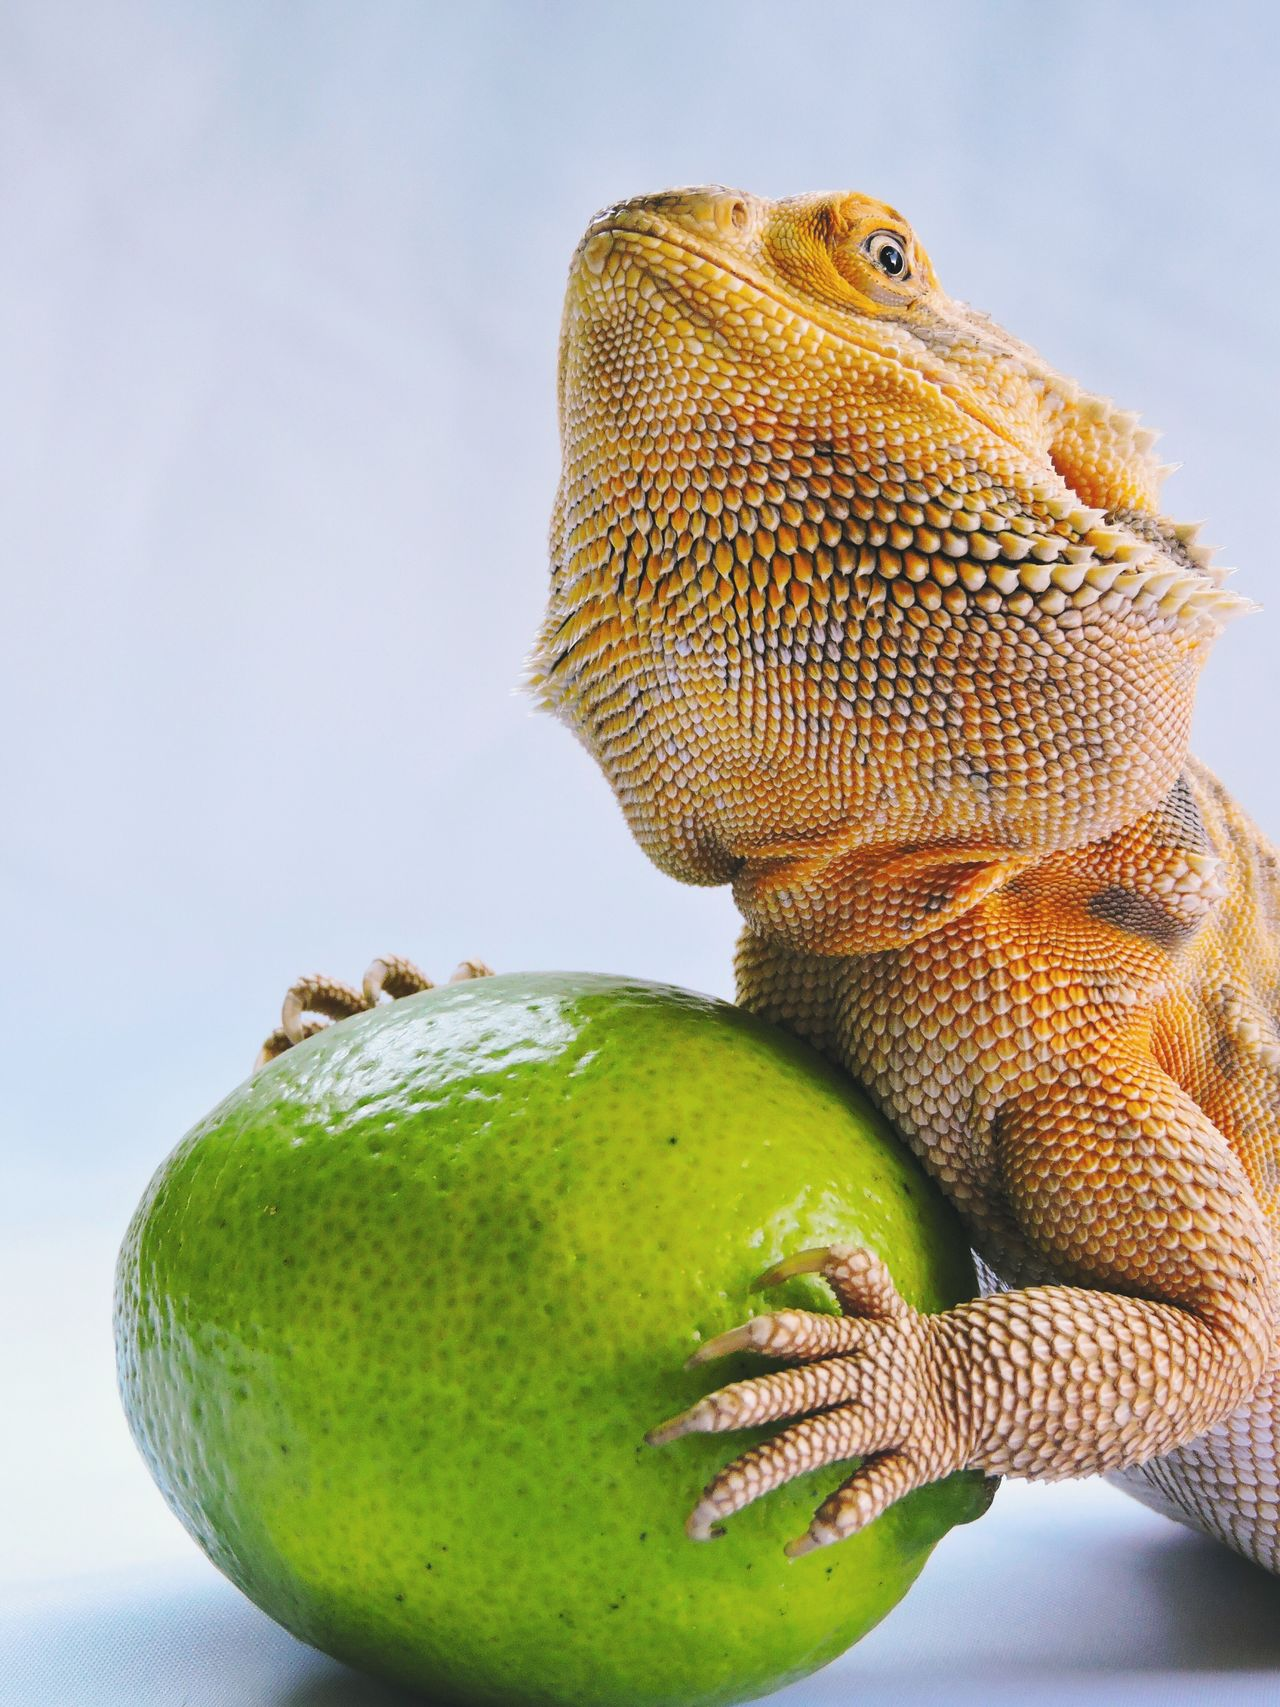 Bearded Dragon Pet Lemon Holding Sitting Studio Shot Green Yellow Orange White Background Detail Close-up Fruit One Animal No People Animal Themes Nature Freshness Vibrant Lizard Leatherback Animal Reptile Photography EyeEm Best Shots Check This Out